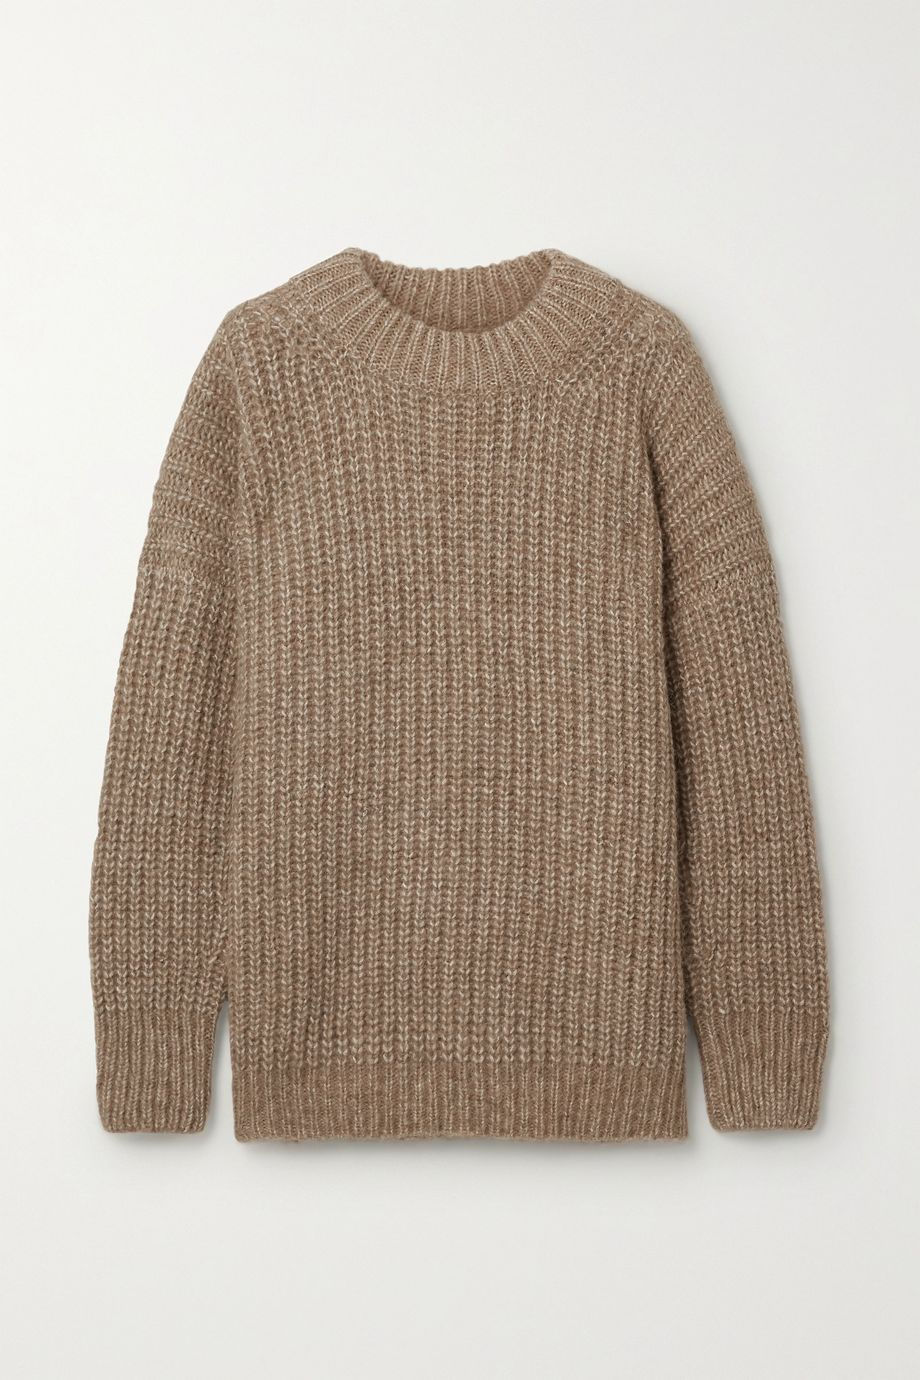 Lauren Manoogian Fisherwoman ribbed alpaca and organic cotton-blend sweater